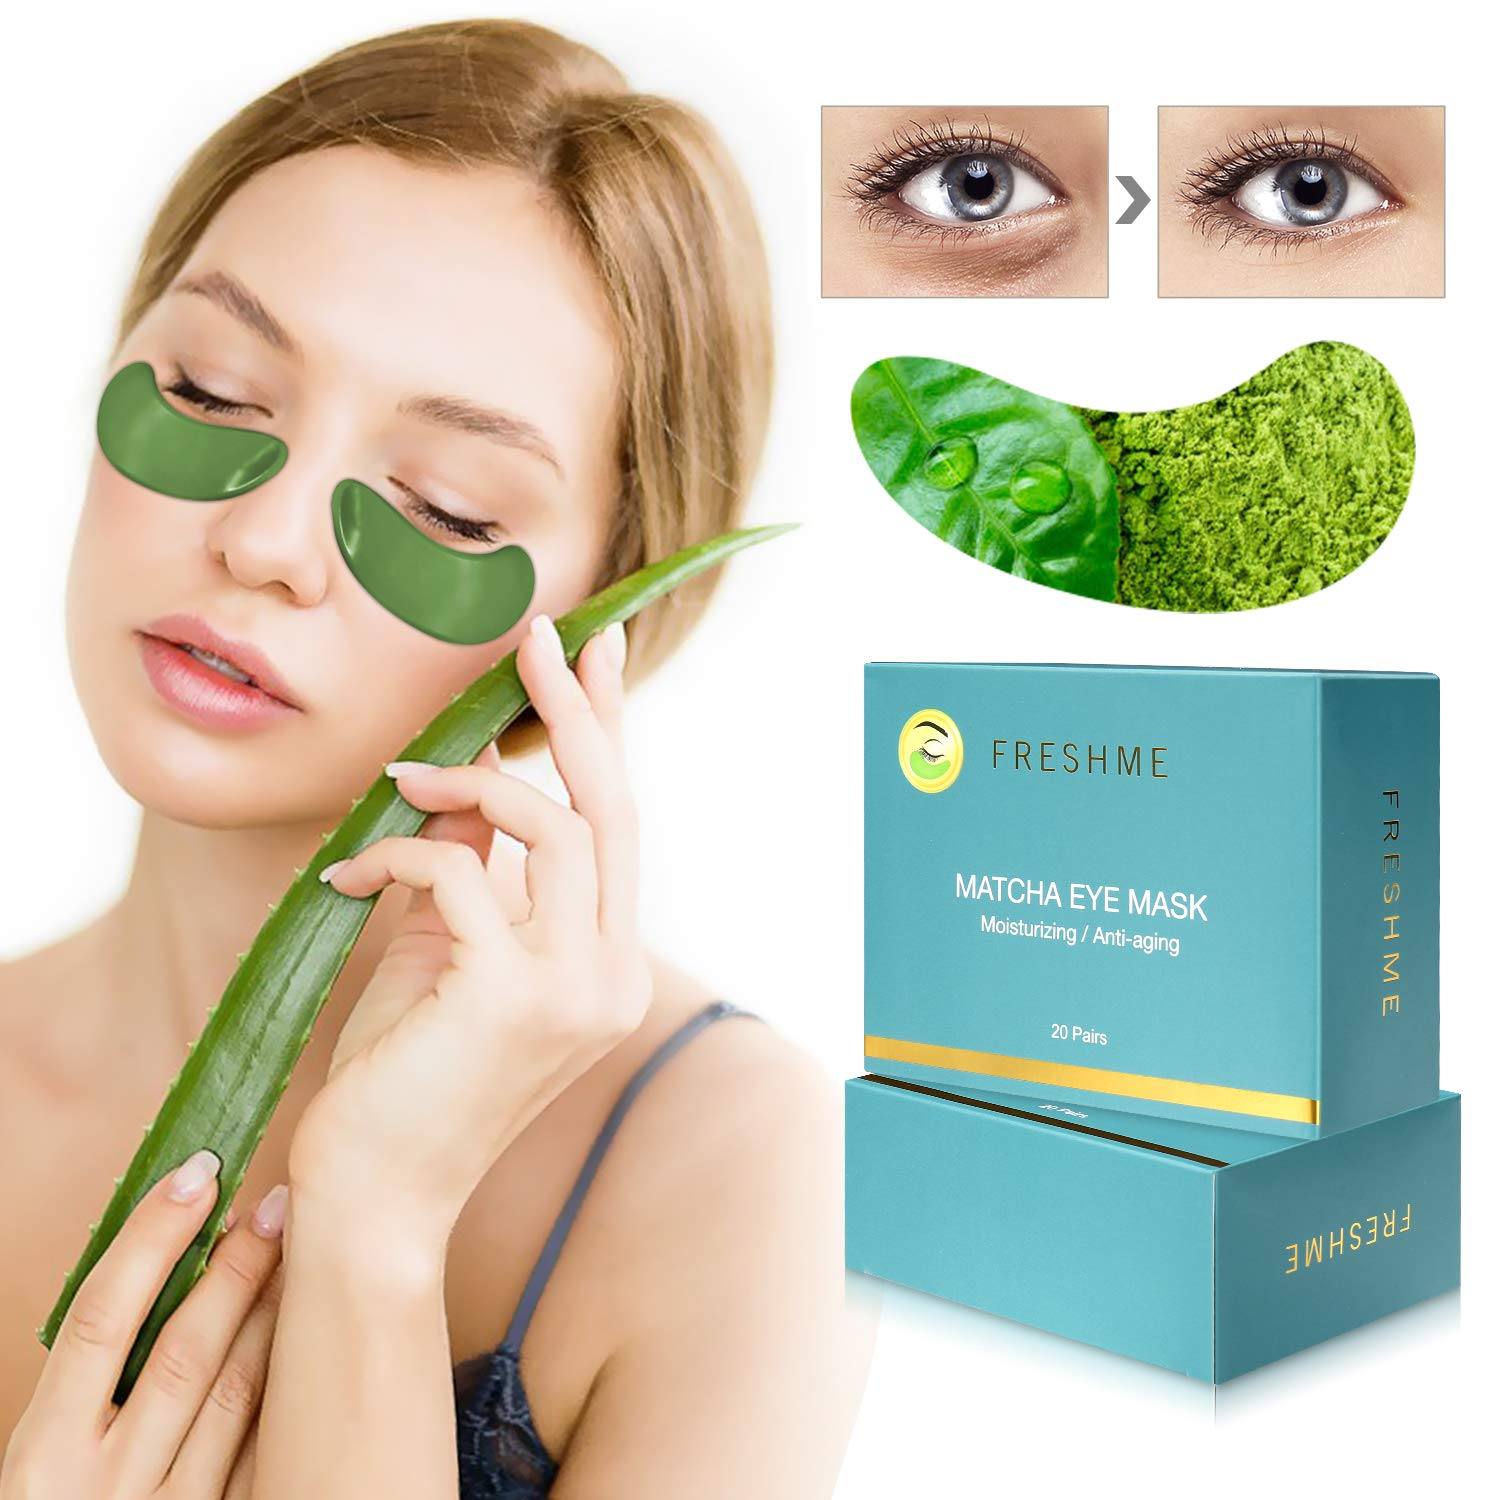 FRESHME Matcha Eye Mask - 20 Pairs Under Eye Patches Aloe Vera Extract Gel Masks for Anti Aging Reduce Puffiness Dark Circles Hyluronic Acid Deep Hydration Eye Pads Treatment Mask for Women and Men by FRESHME